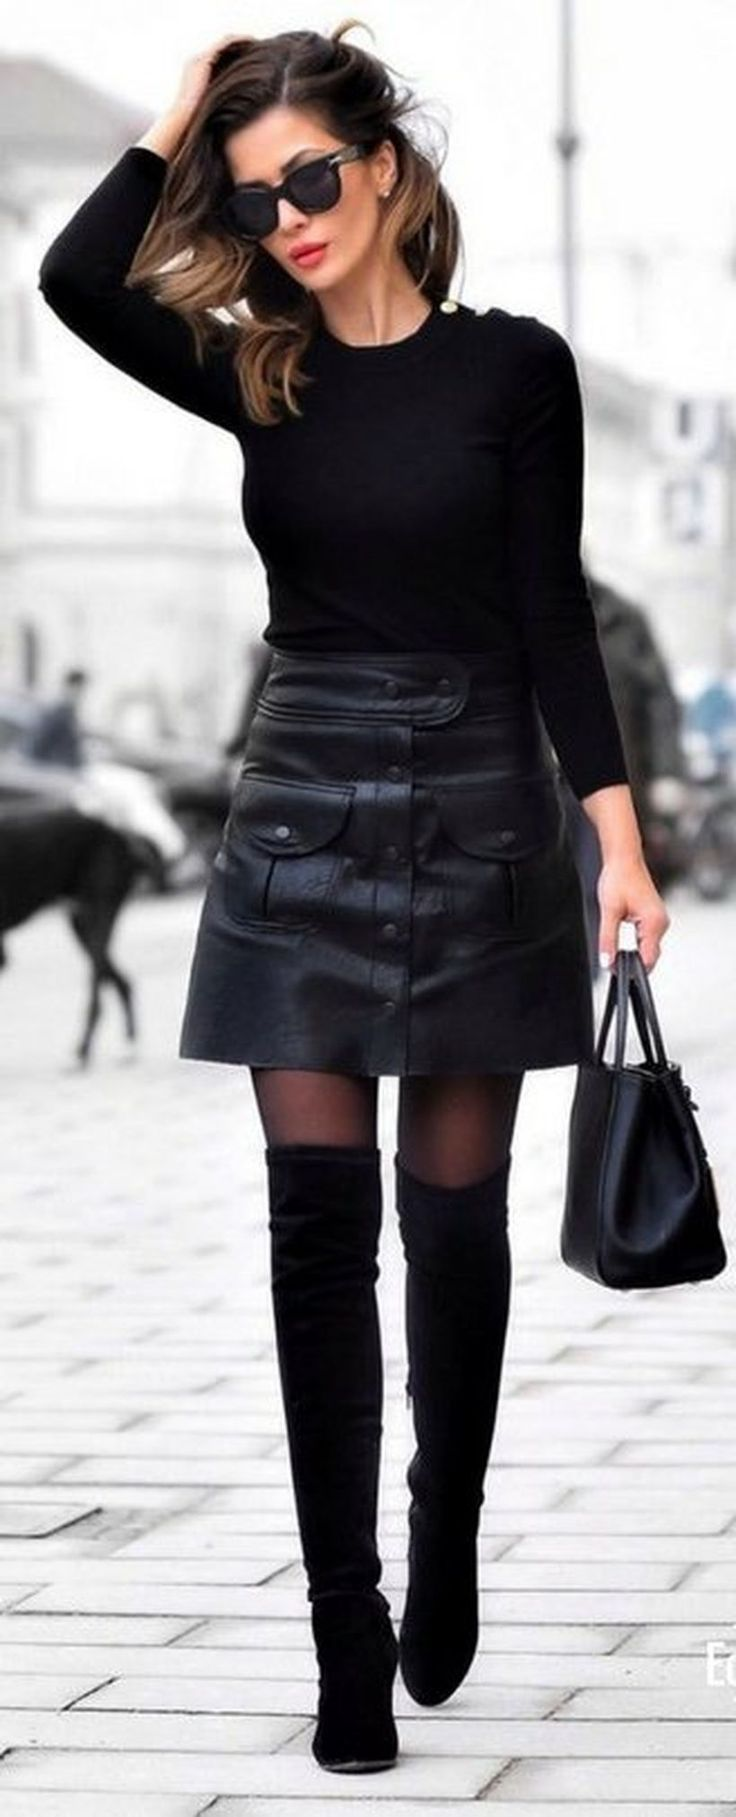 100+ Stylish Leather Tote Bags for Work Outfits Ideas https://fasbest.com/100-stylish-leather-tote-bags-for-work-outfits-ideas/